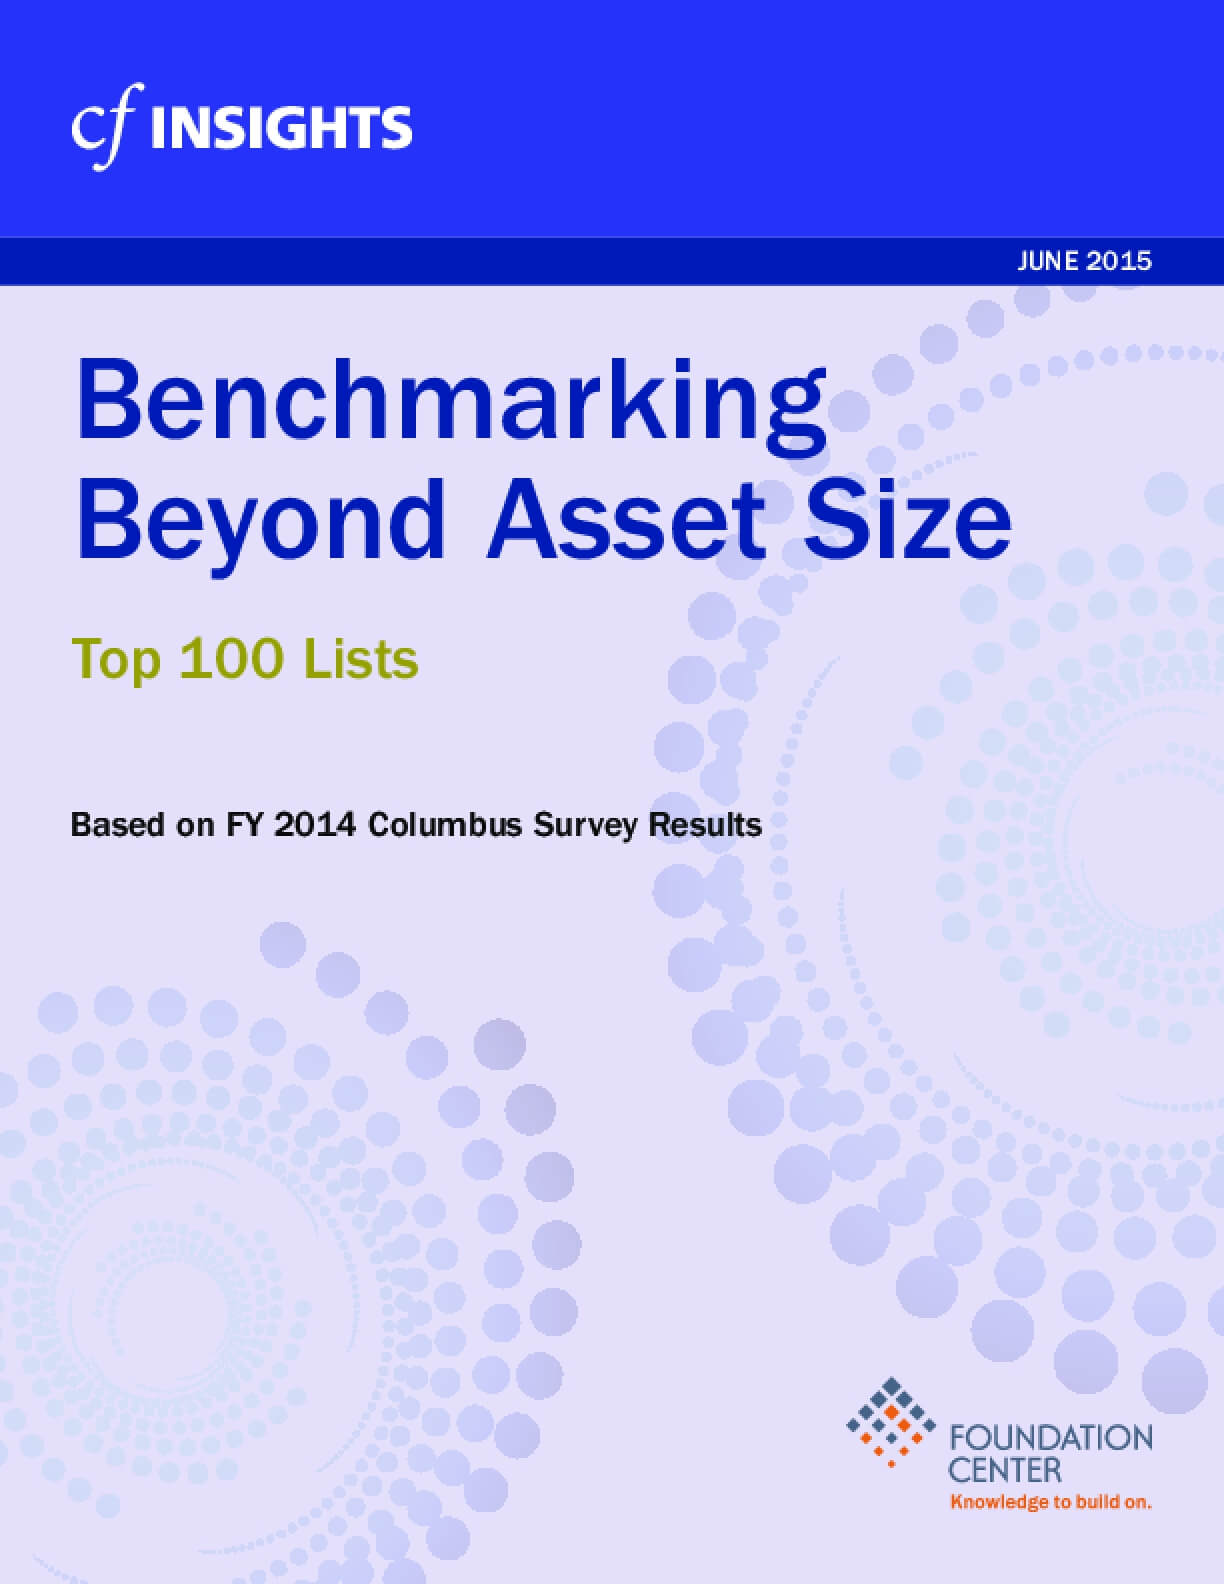 Benchmarking Beyond Asset Size Top 100 Lists - FY 2014